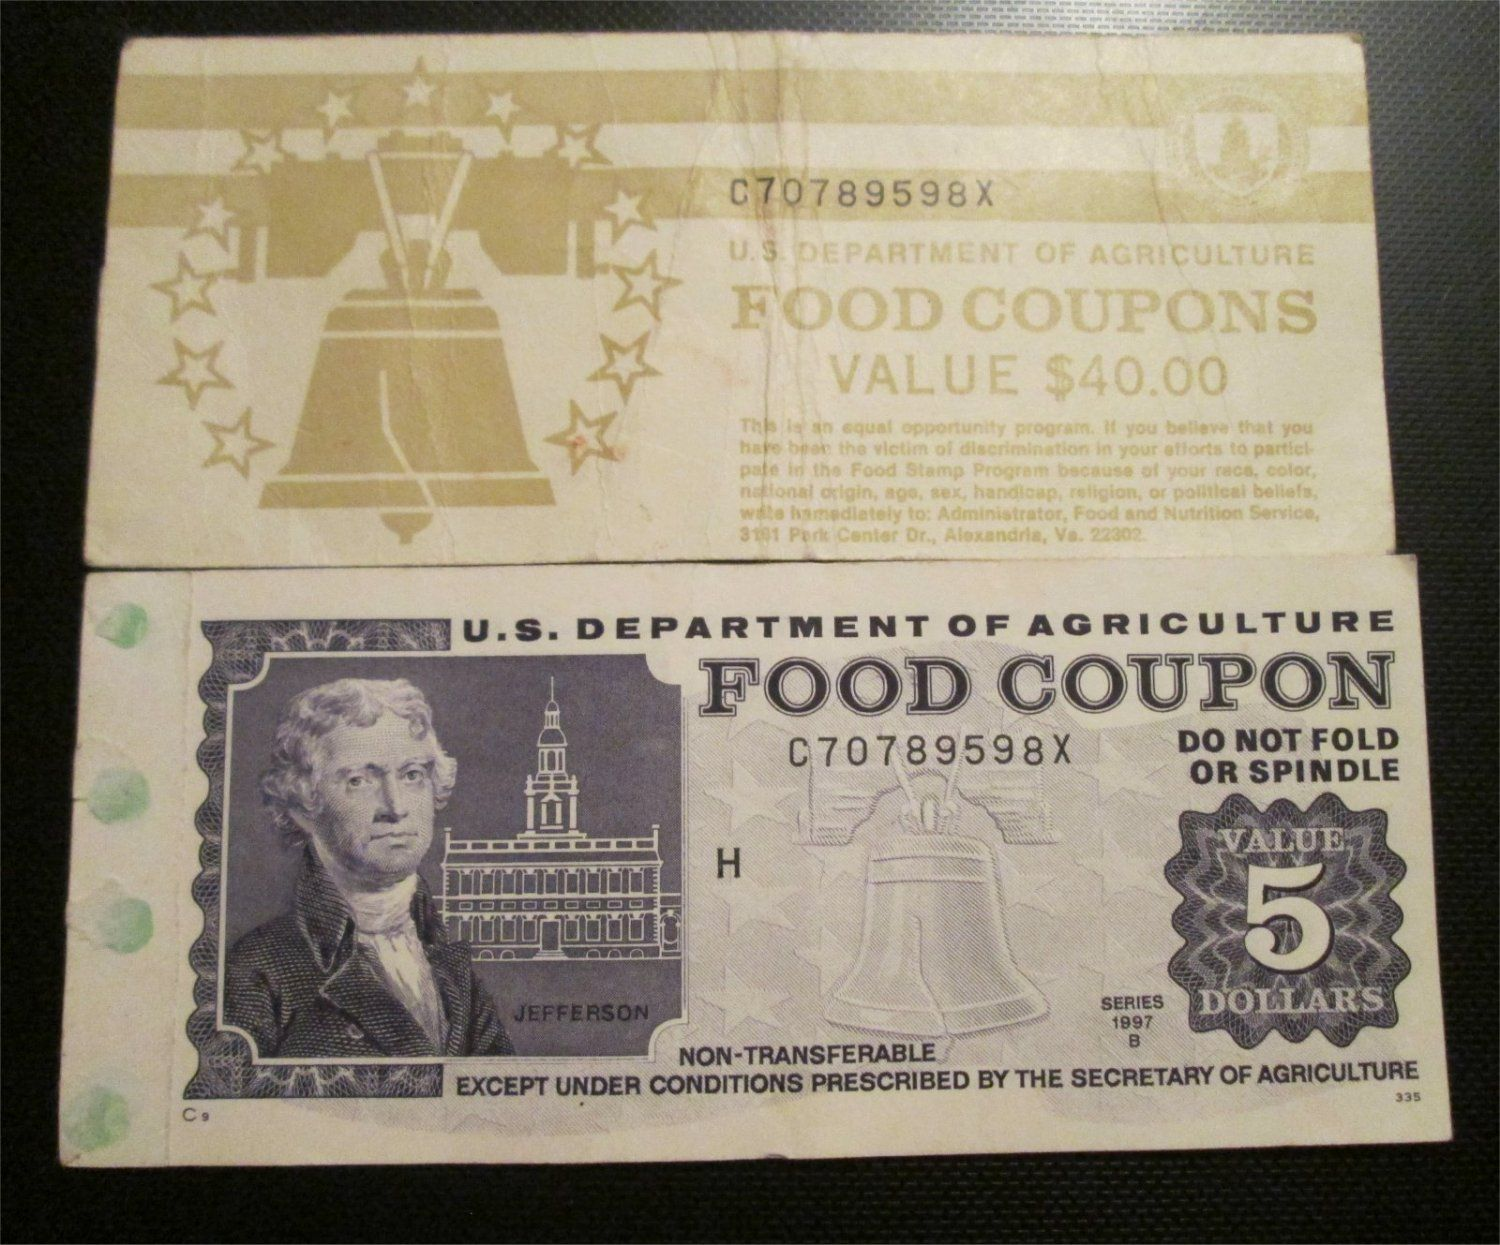 $30 USDA Incomplete Food Coupons Real Vintage Food stamps 1997B  C70789598X     Incomplete Book of USDA food stamps. $30 Dollars in Food Coupons,   Yo